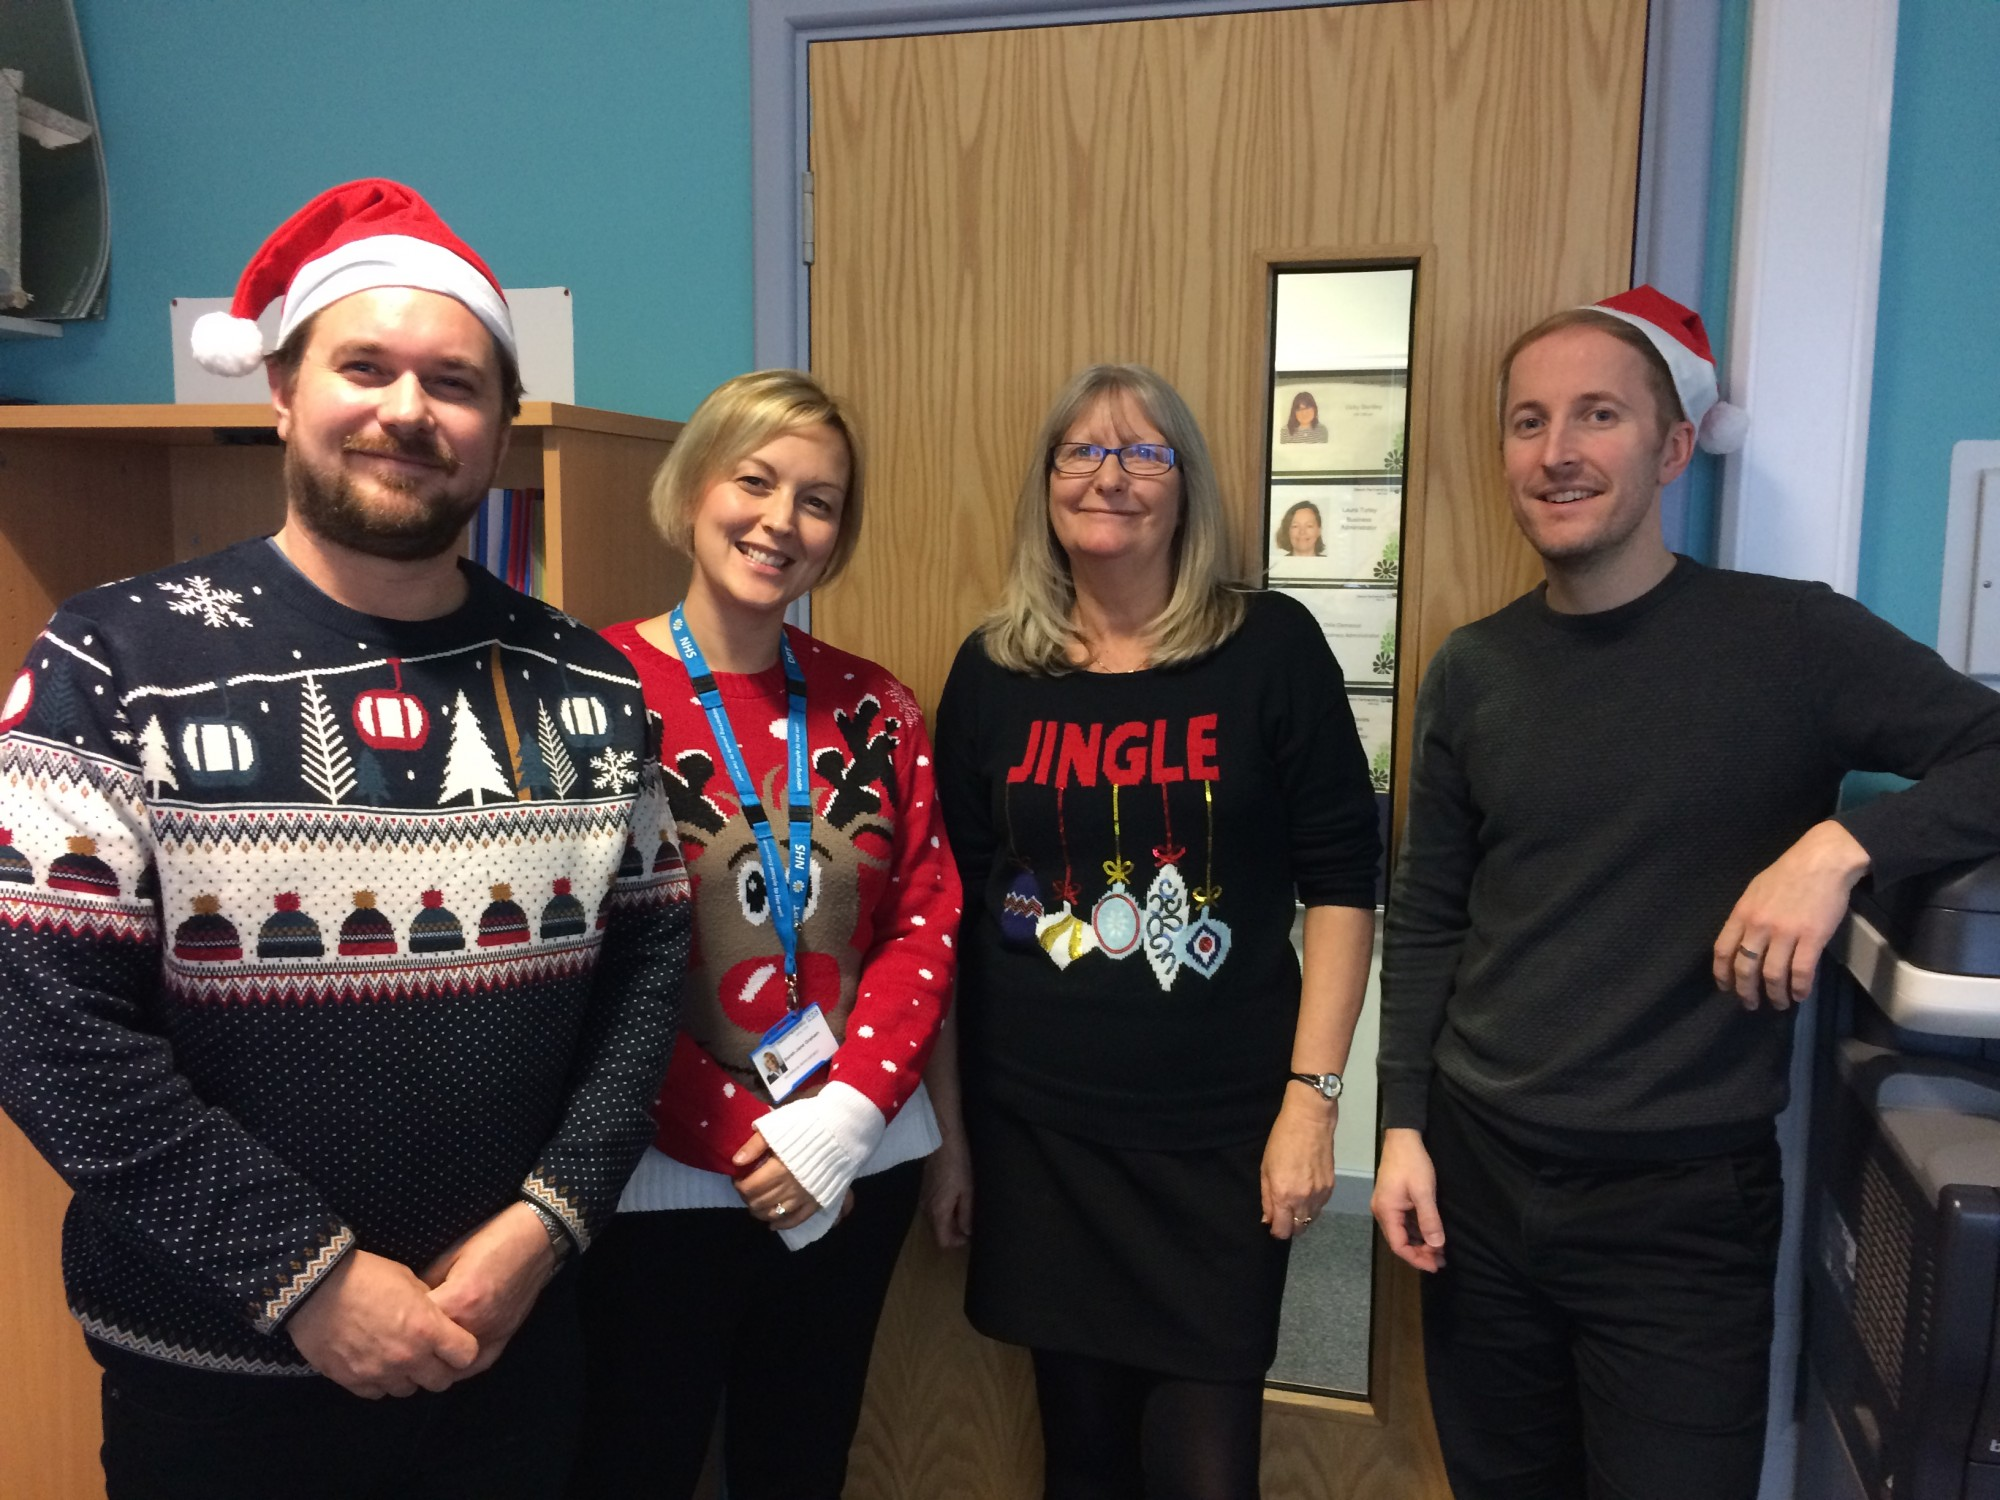 Jolly Christmas Clothing Thursday 2019